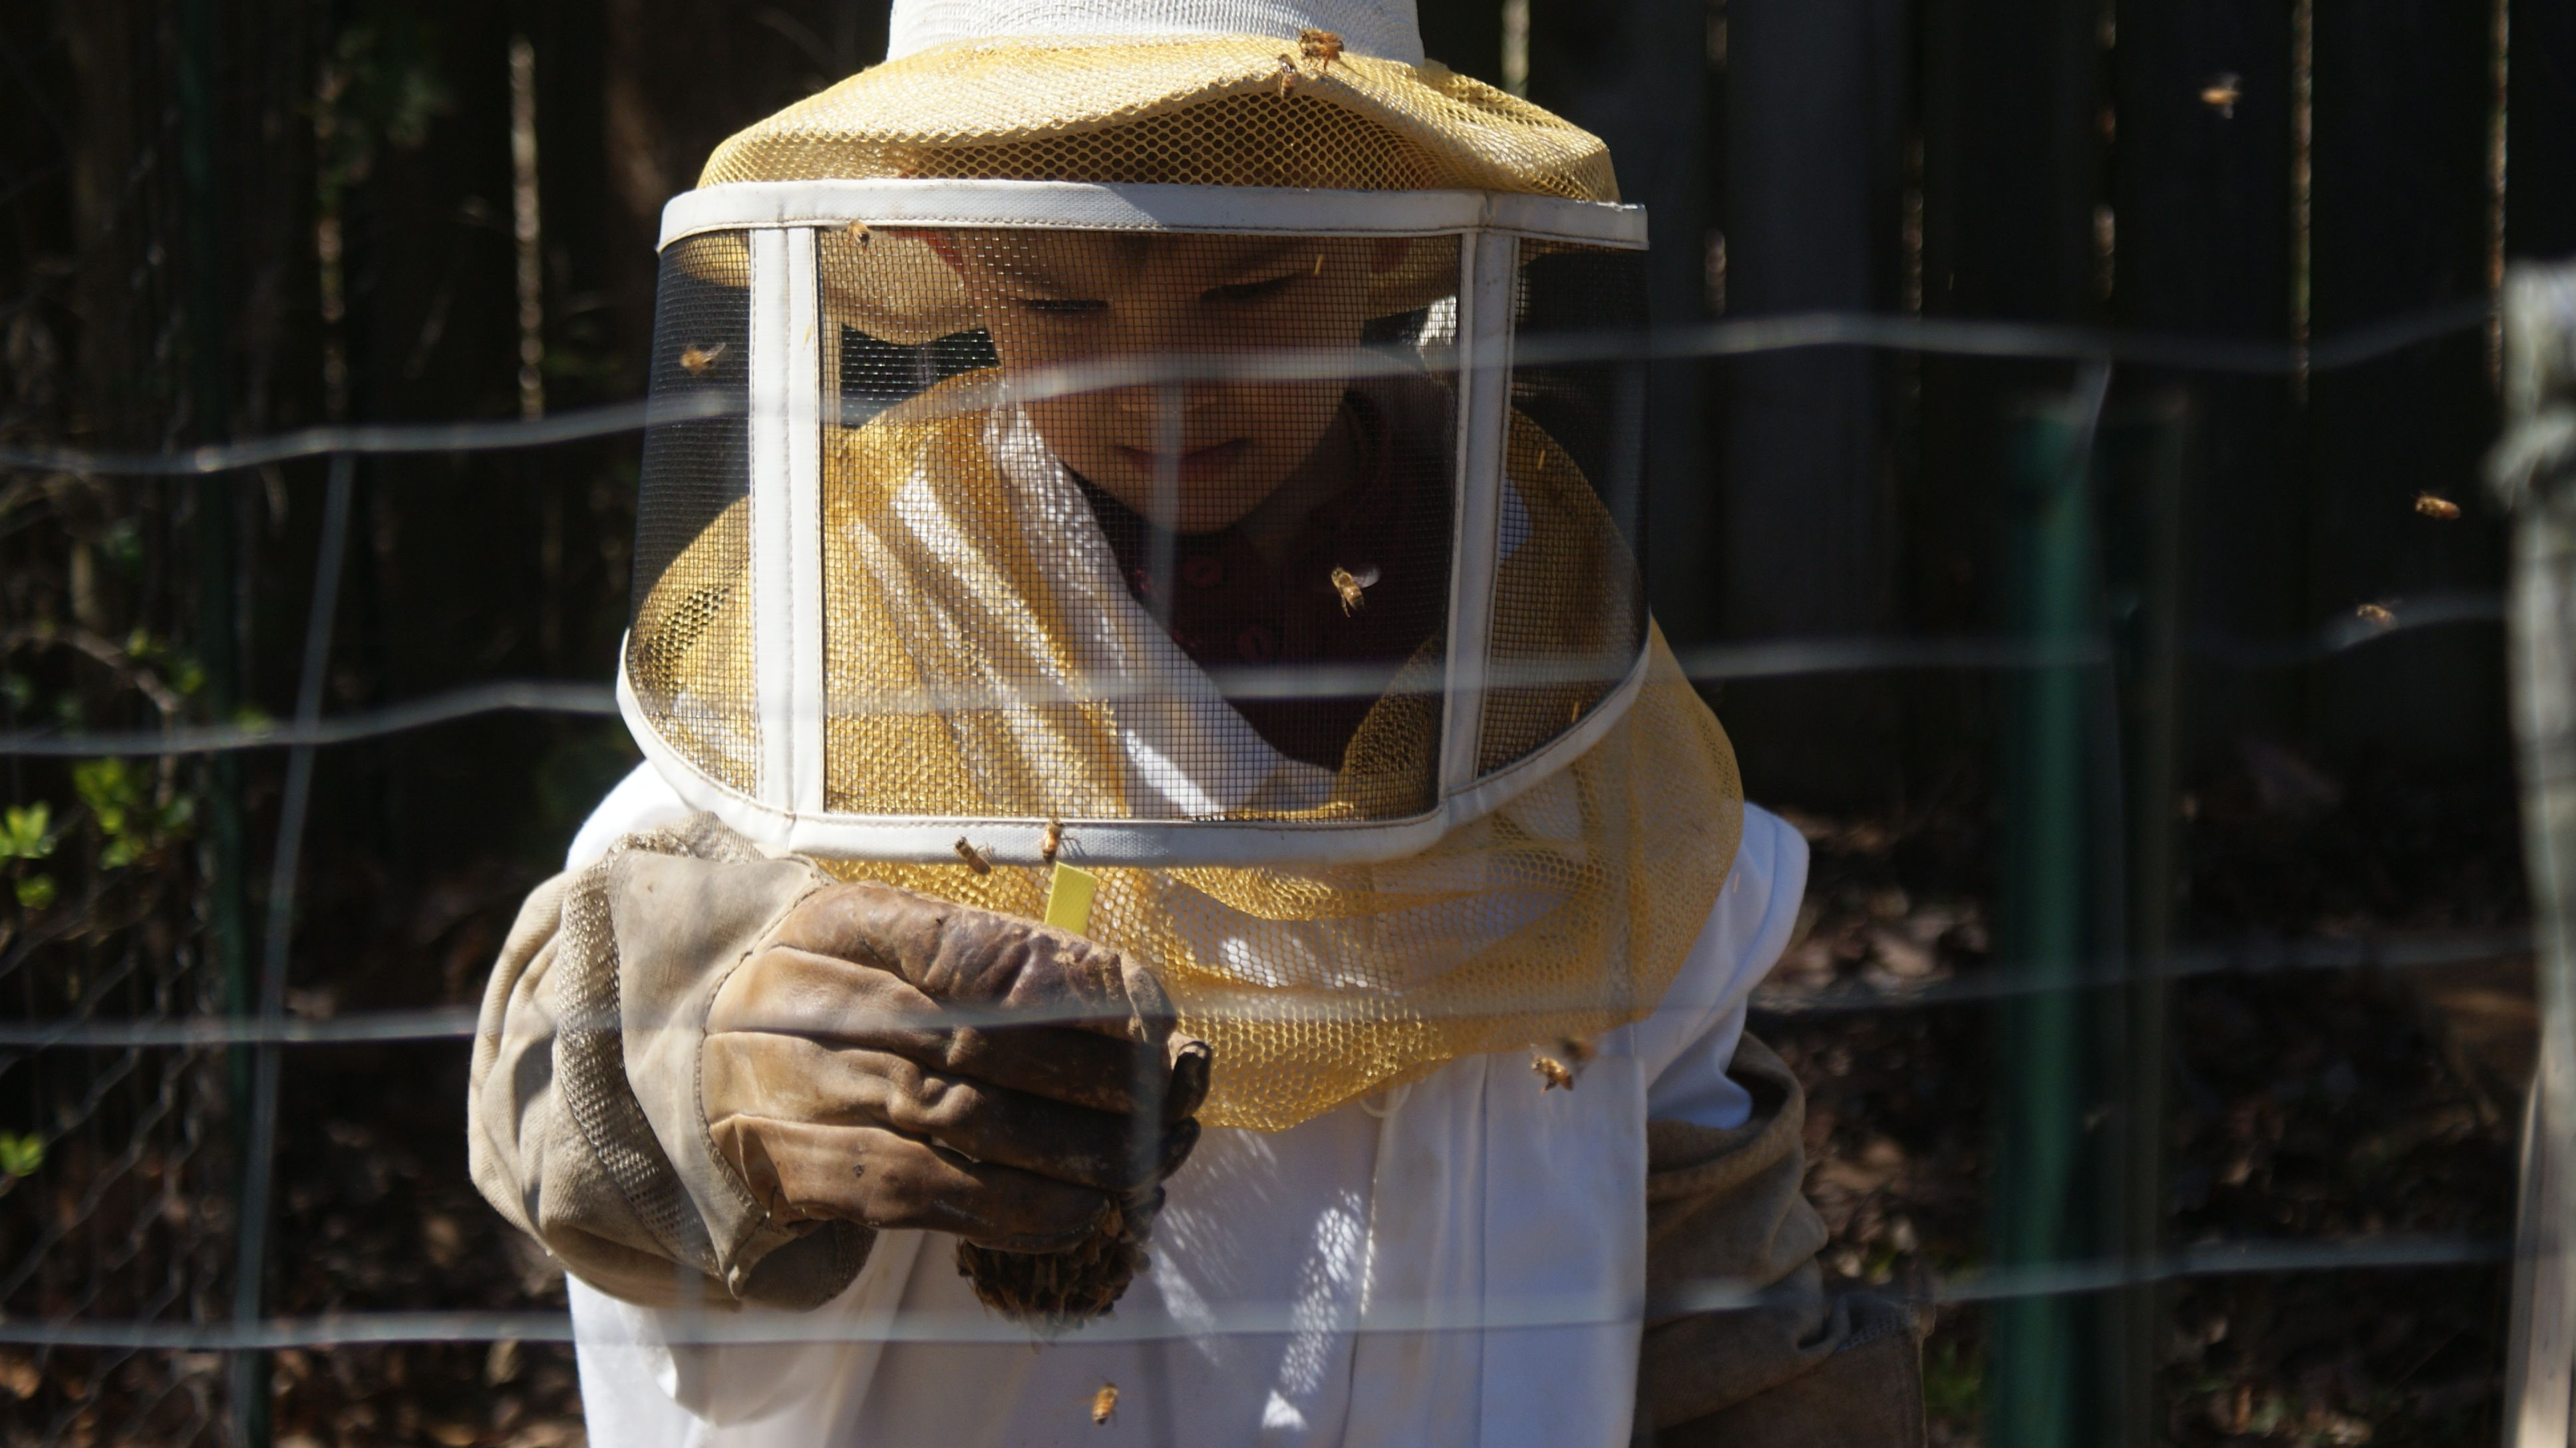 Beekeeper with Queen Cell